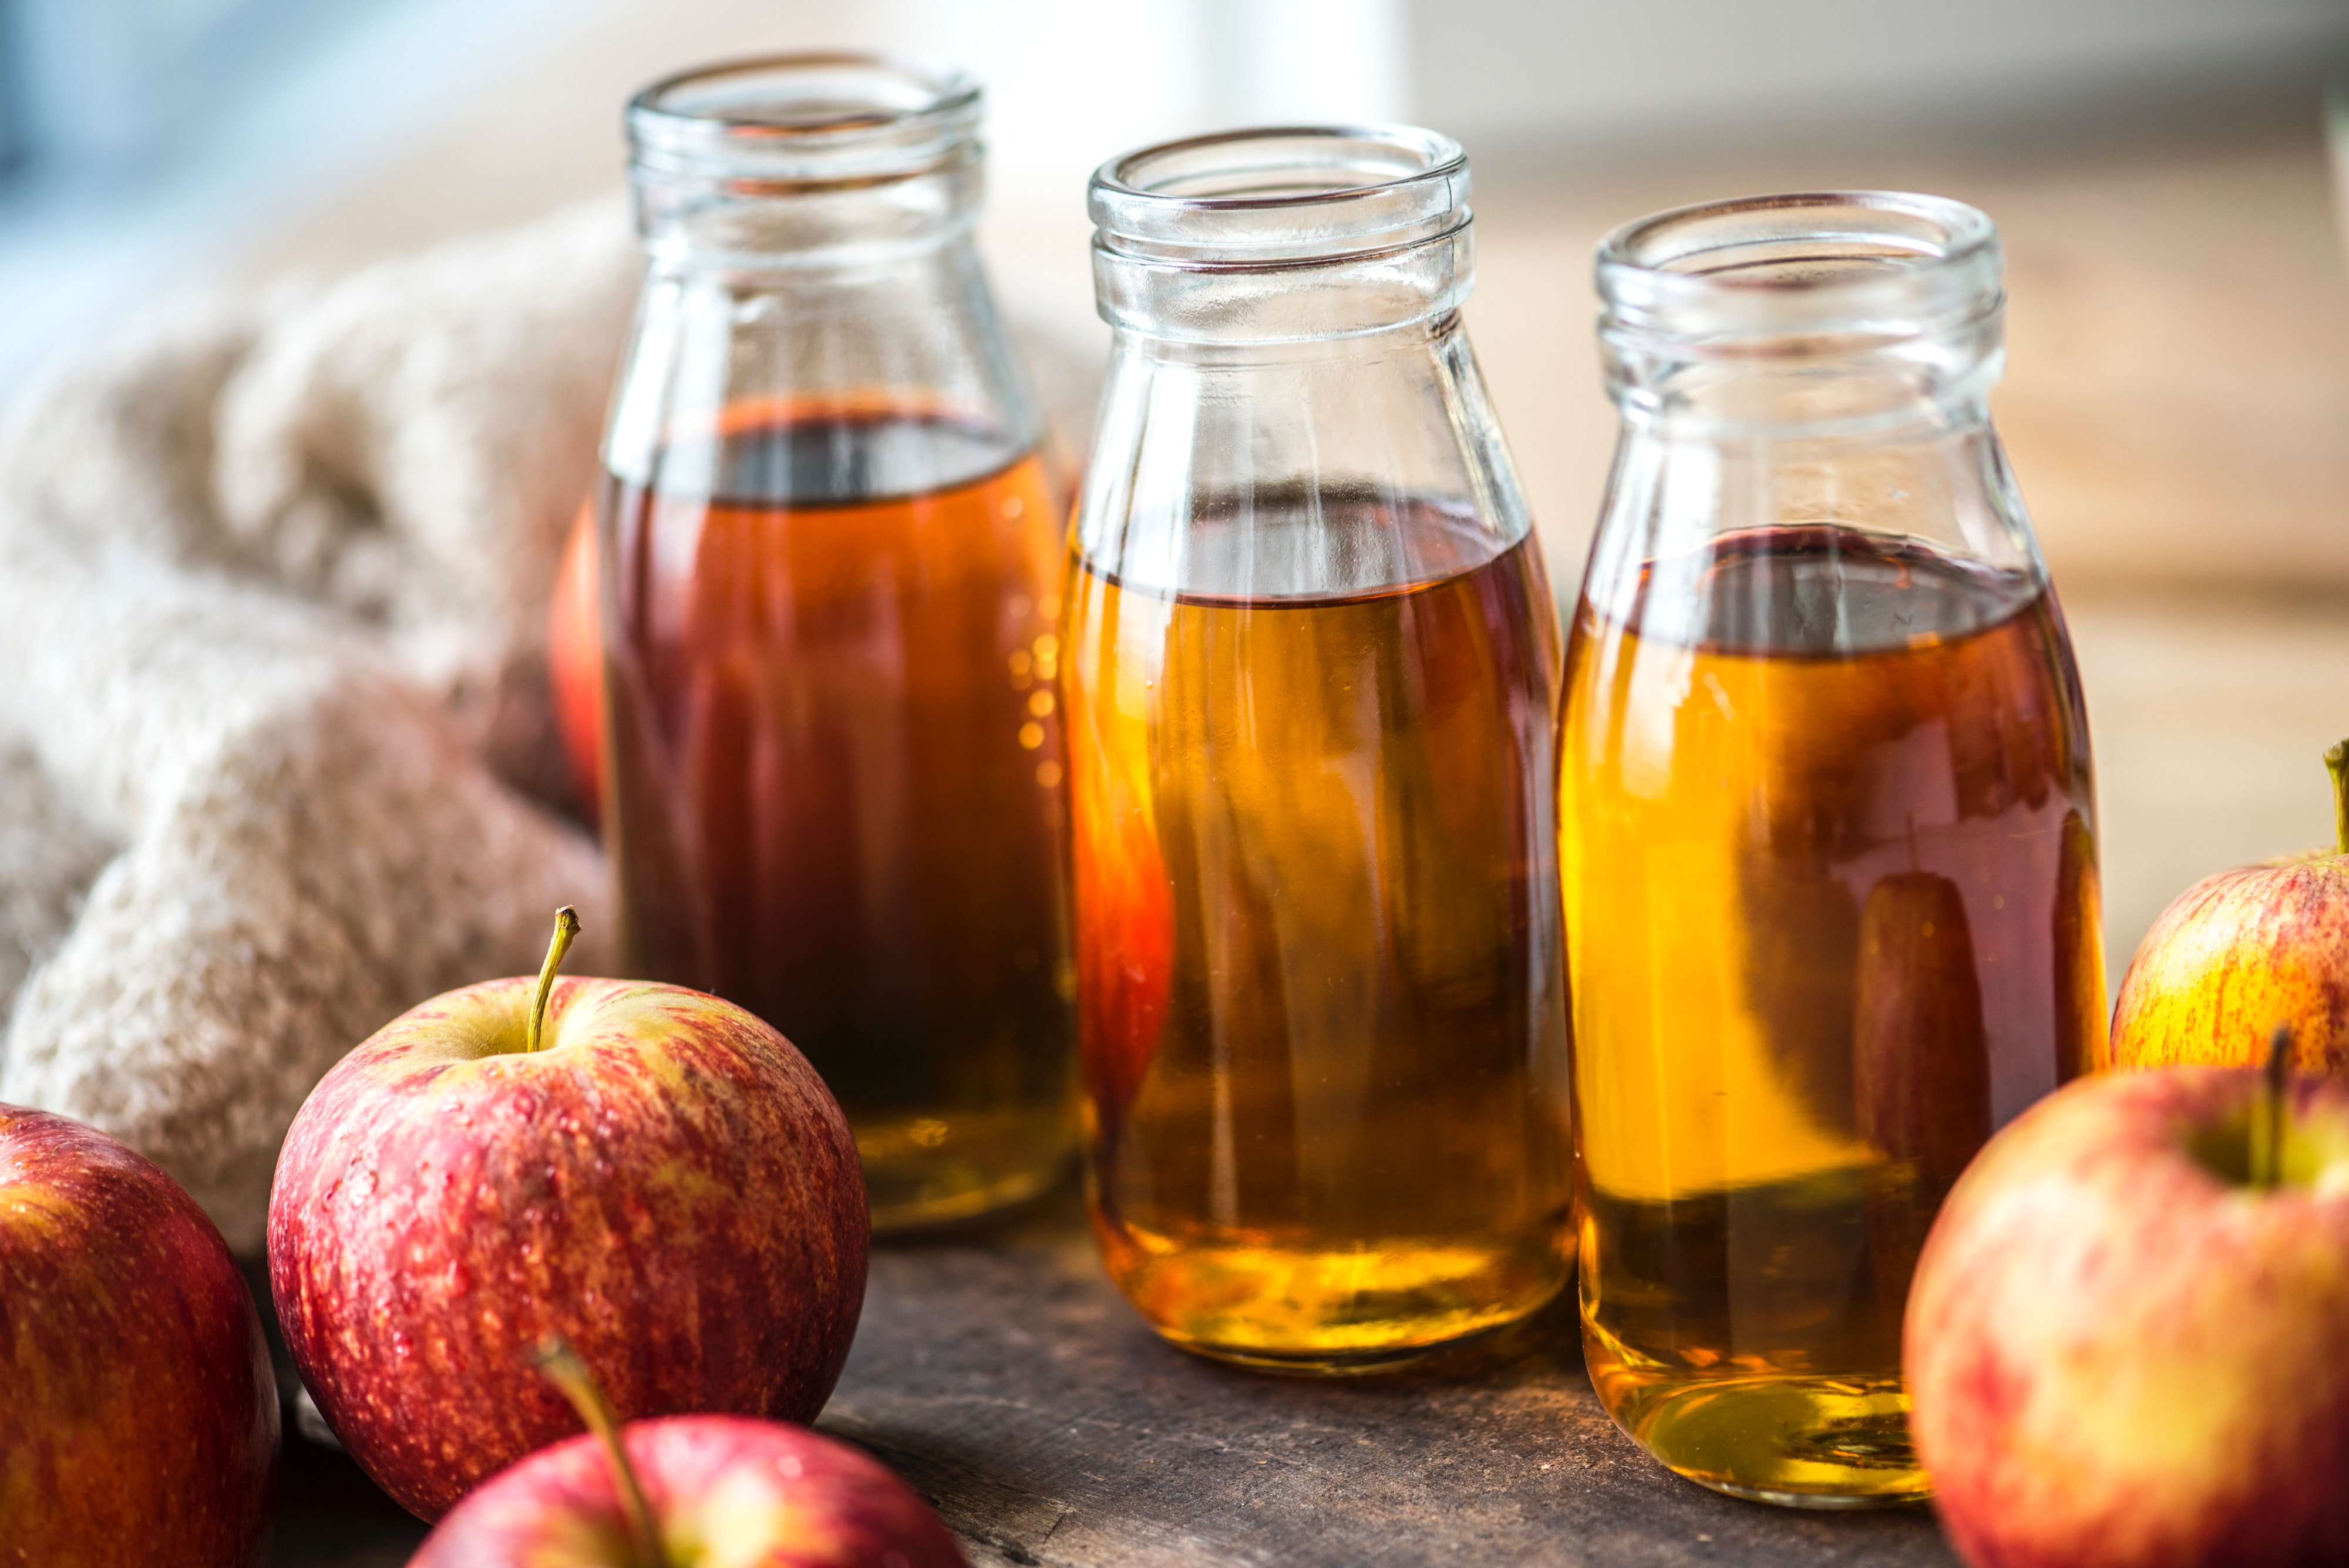 Apple Cider Vinegar – Does It Live Up To The Hype?